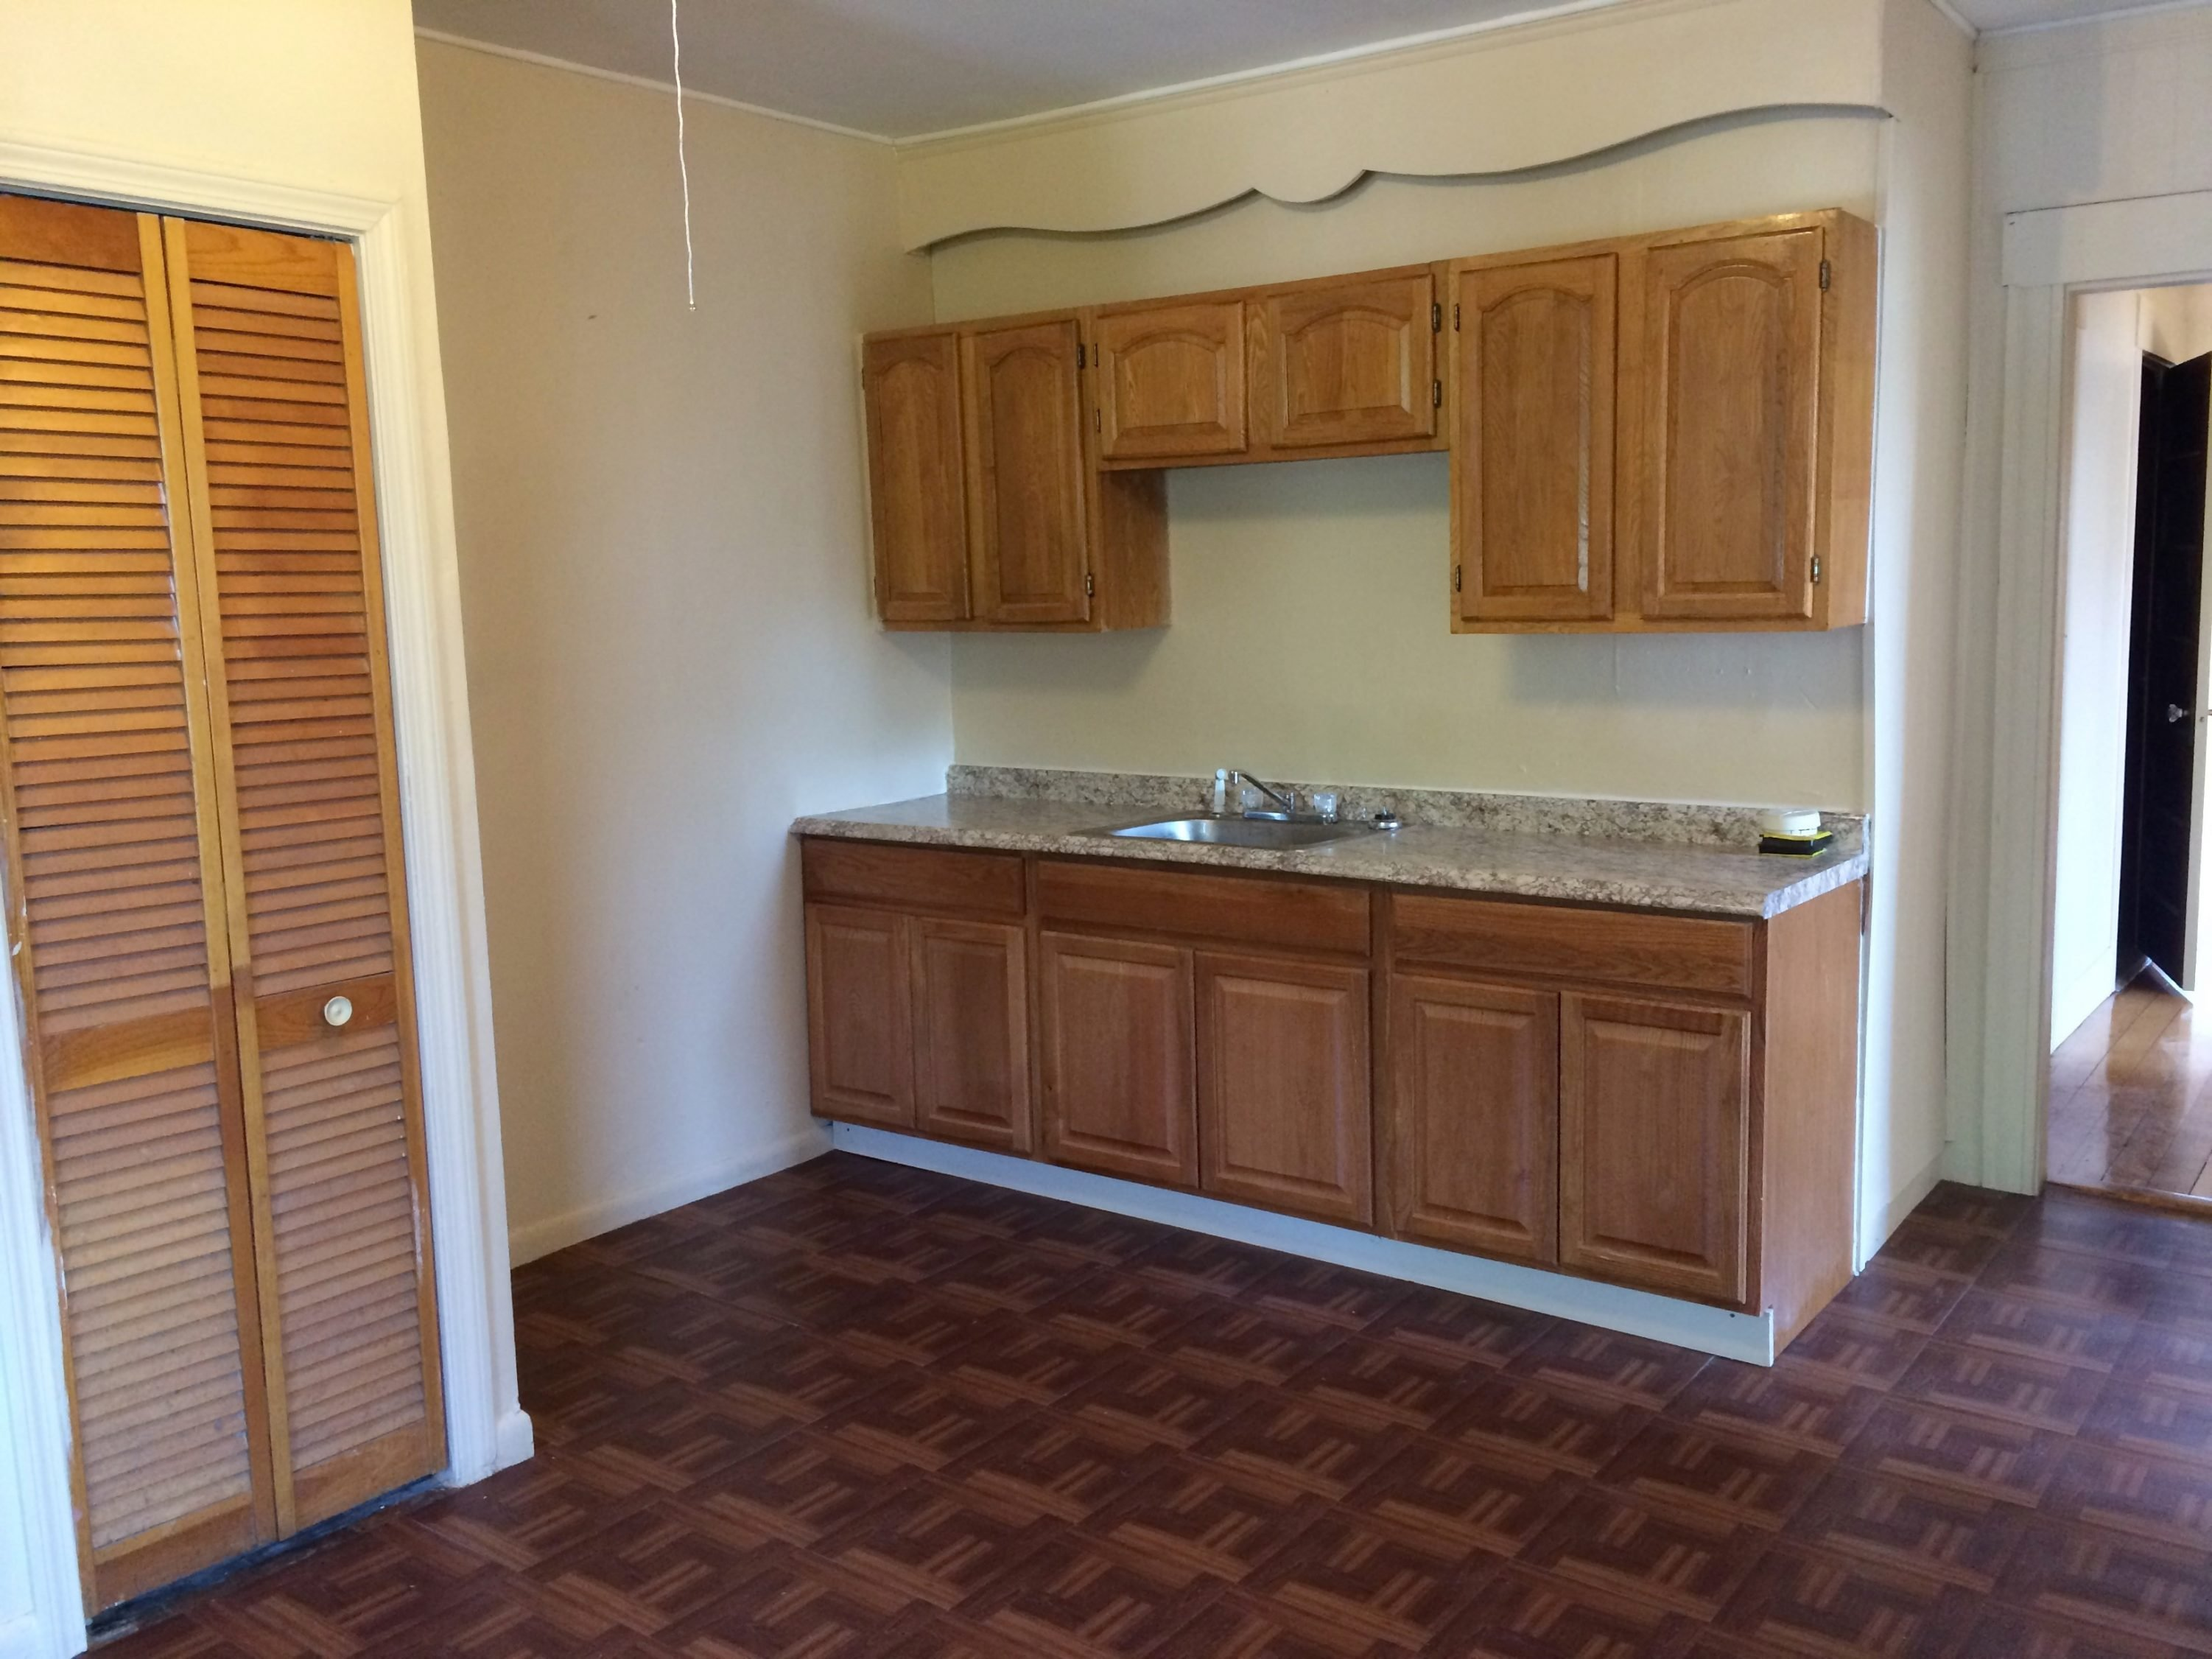 Best 2 Bedroom Apartments In Worcester Ma 1 508 735 7263 With Pictures